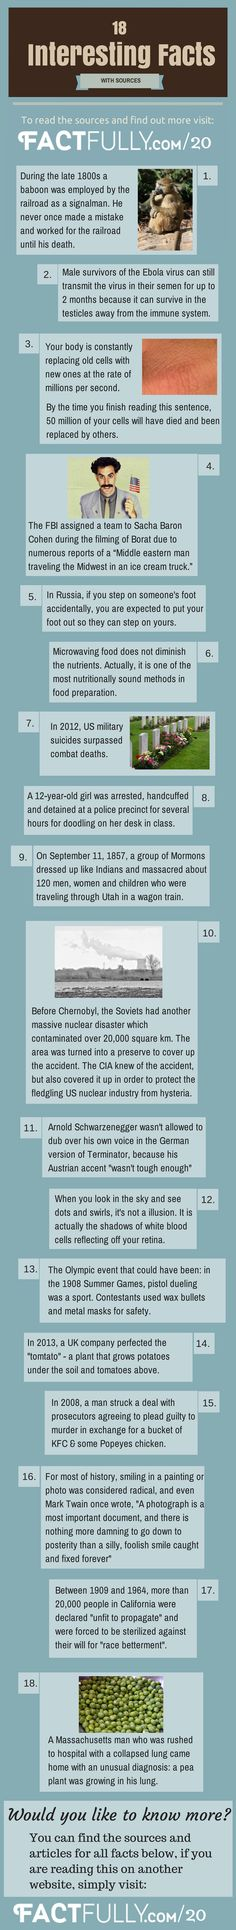 Interesting Facts And Stories - Sources: http://factfully.com/20/